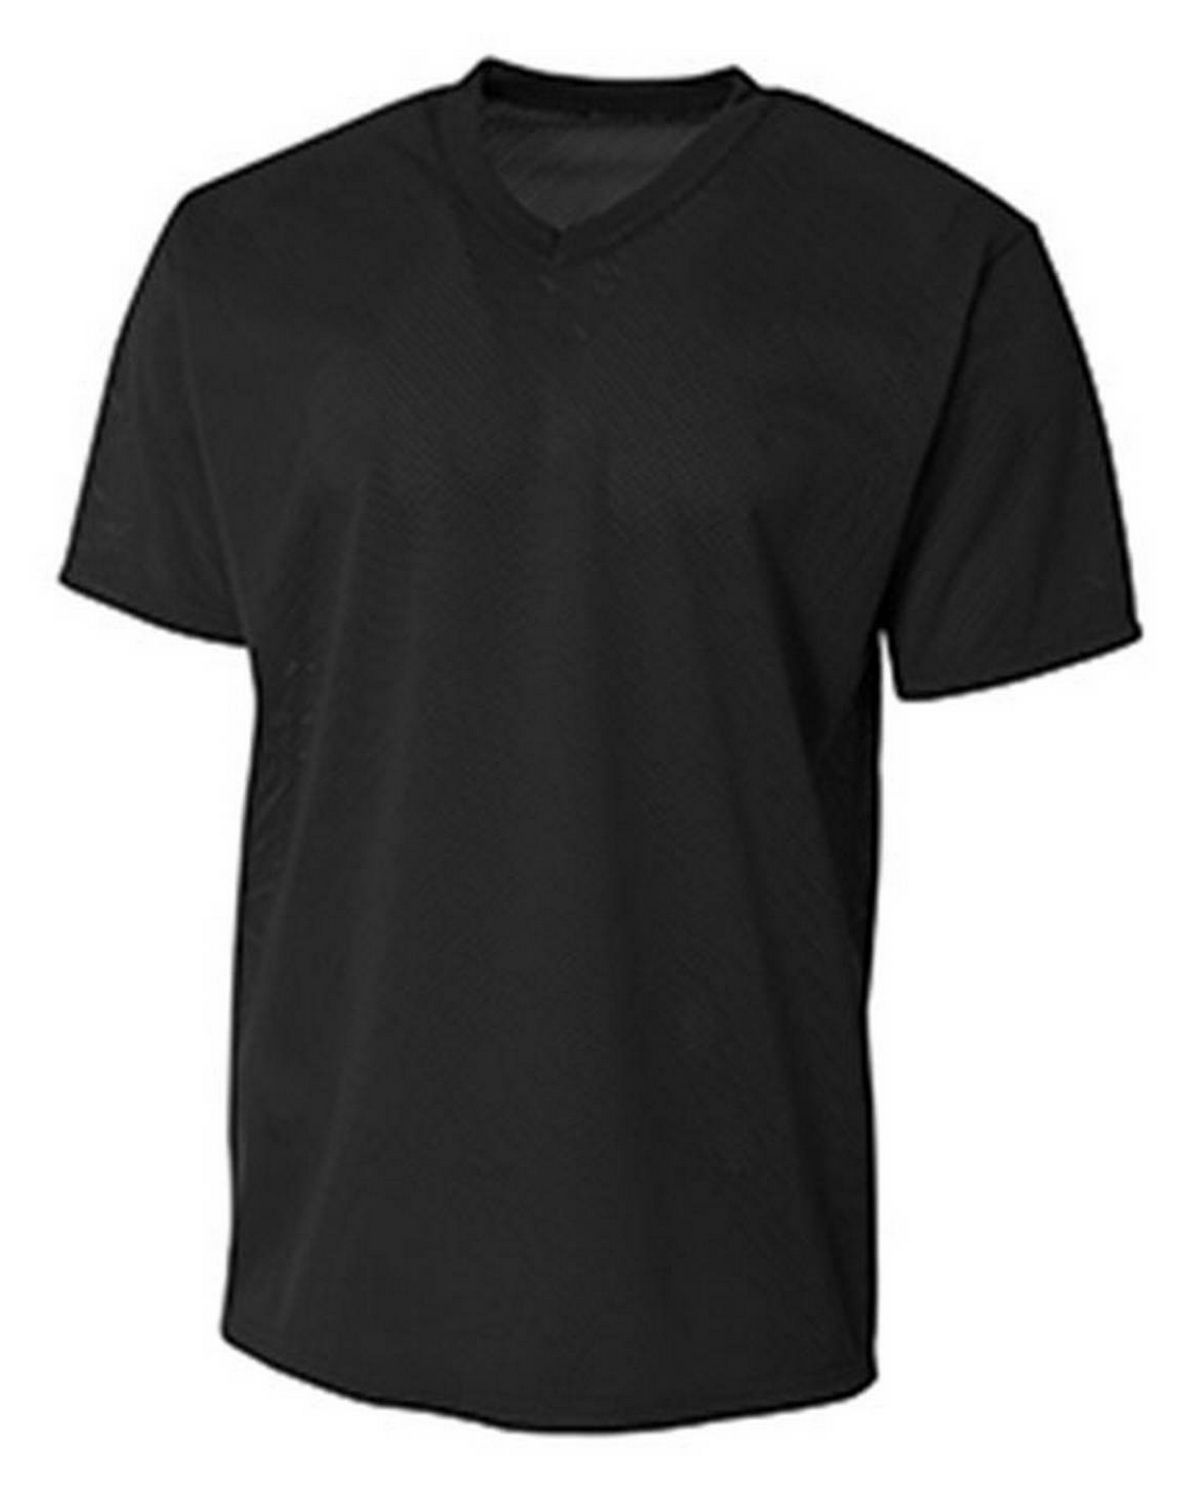 A4 N3364 Men's Polyester Mesh V-Neck T-Shirt